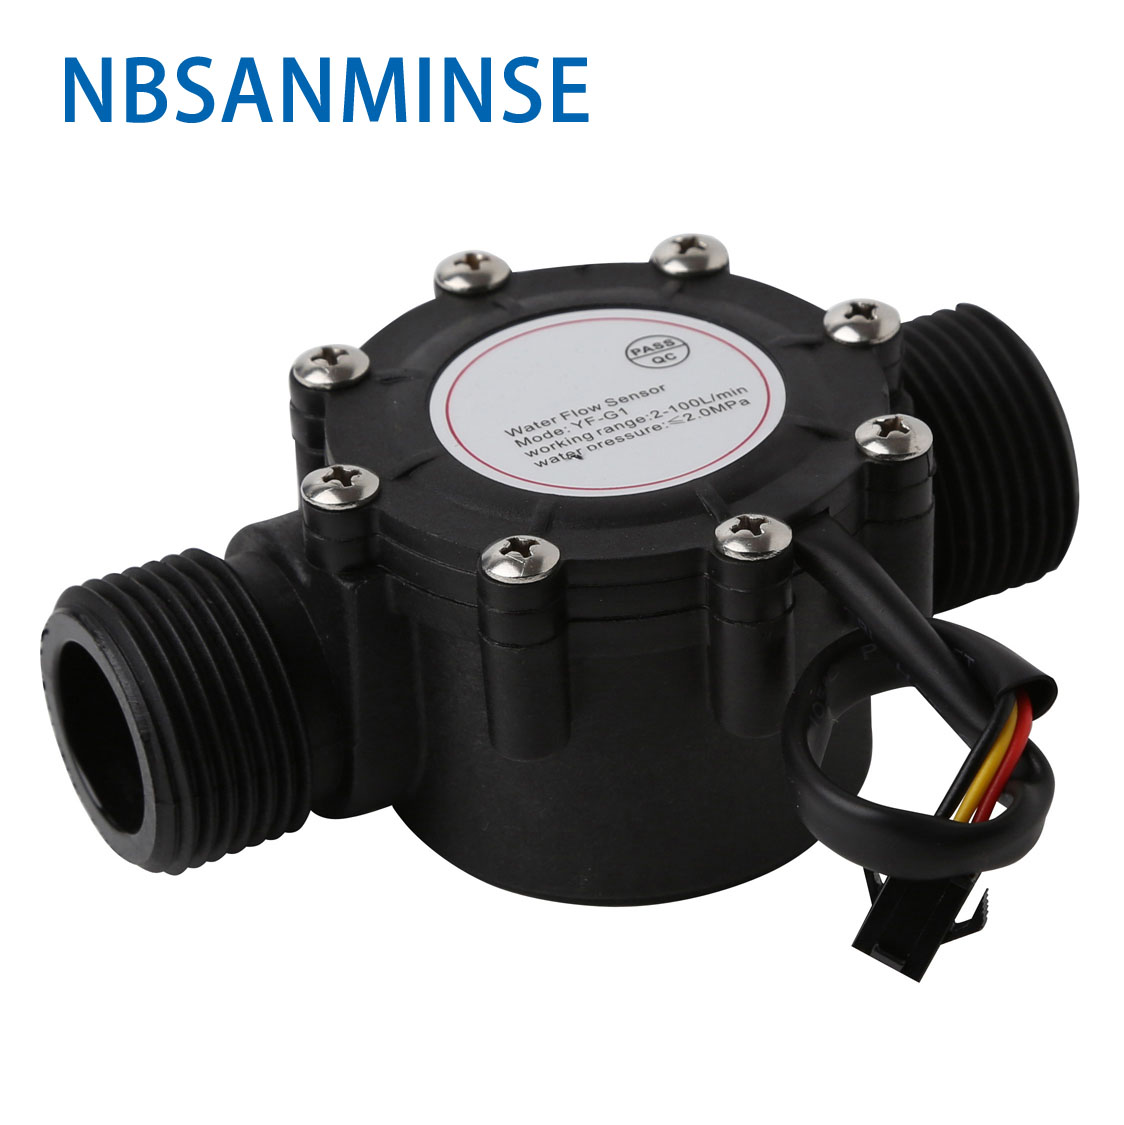 Nbsanminse Smf G1 Sms400a Water Flow Sensor Petrochemicals Work District Traffic Controller Waterswimming Pool Garden Industrial